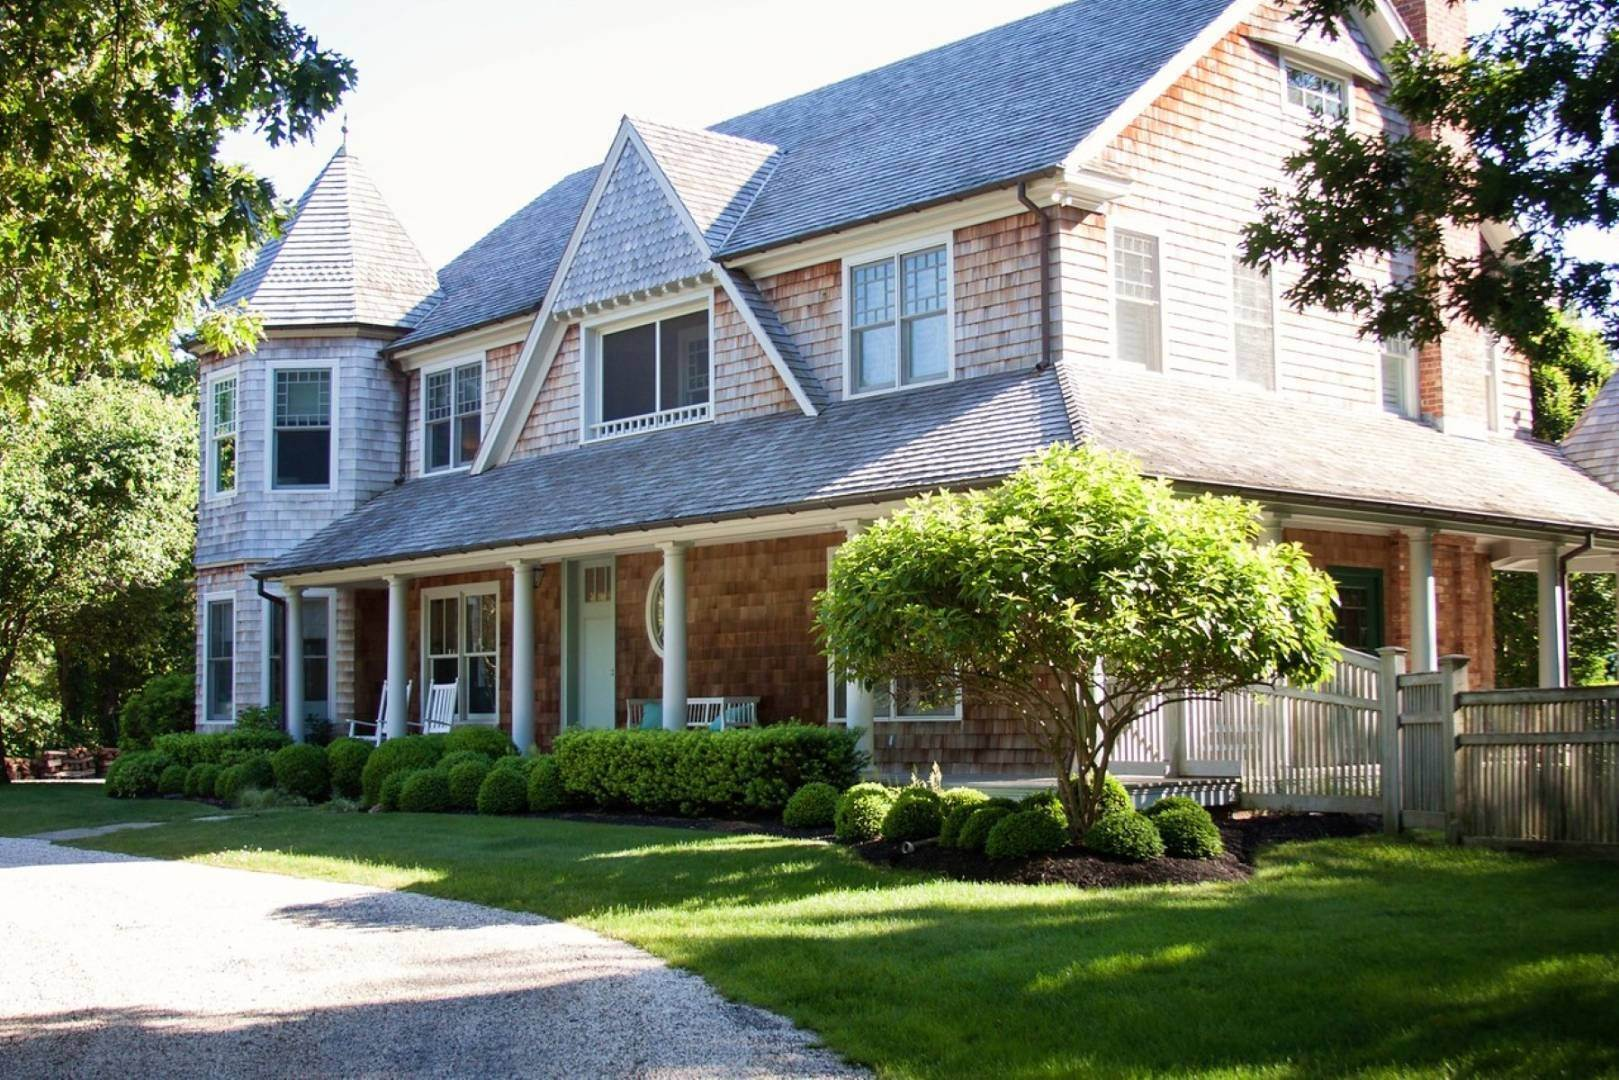 Single Family Home at Fabulous Four Bedroom Home In Southampton Southampton, NY 11968